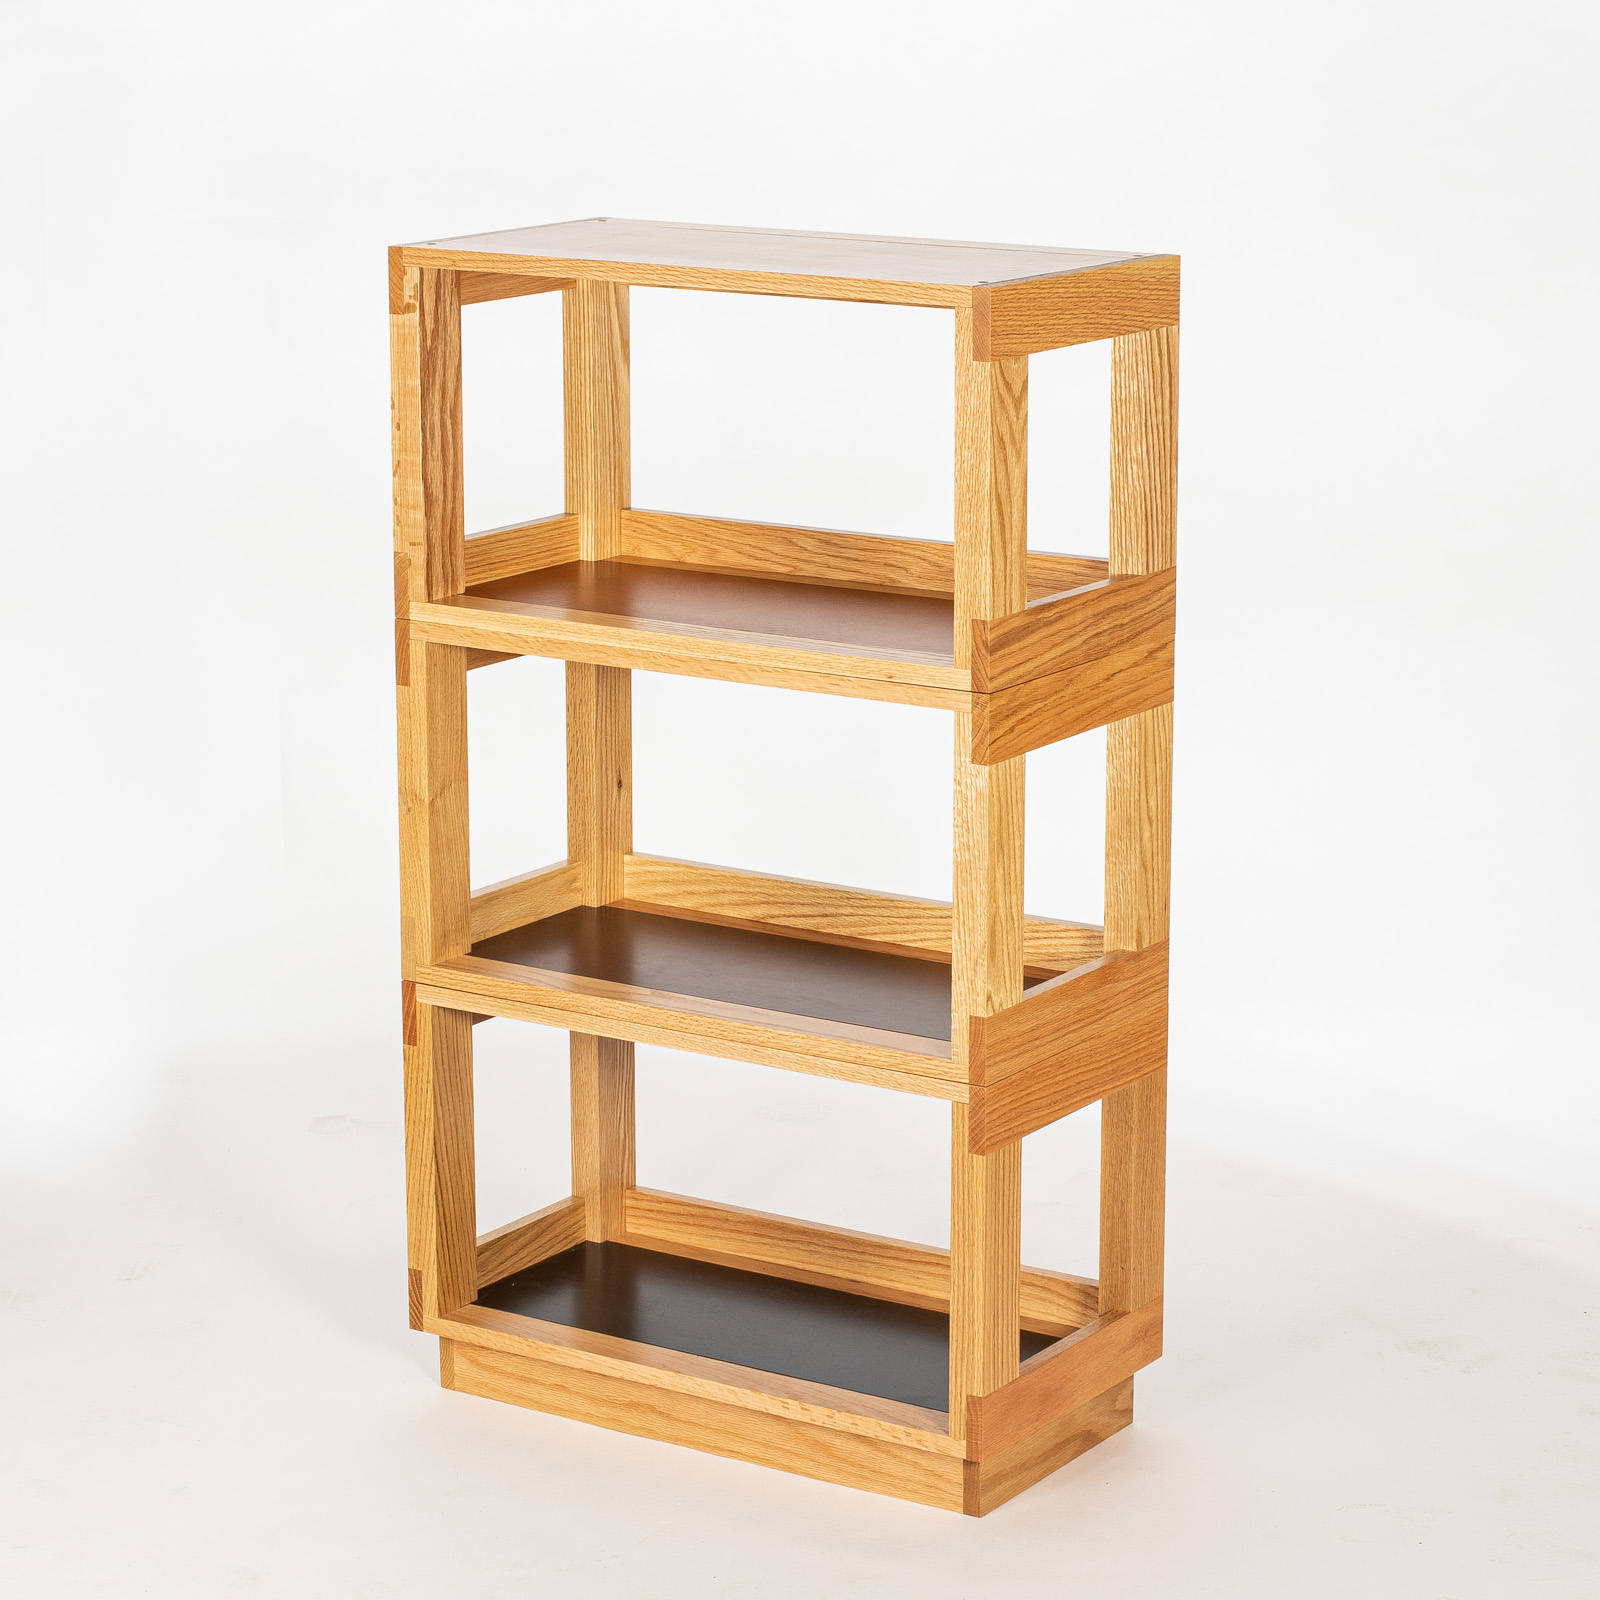 3 Oak Eleganza Shelves with Base